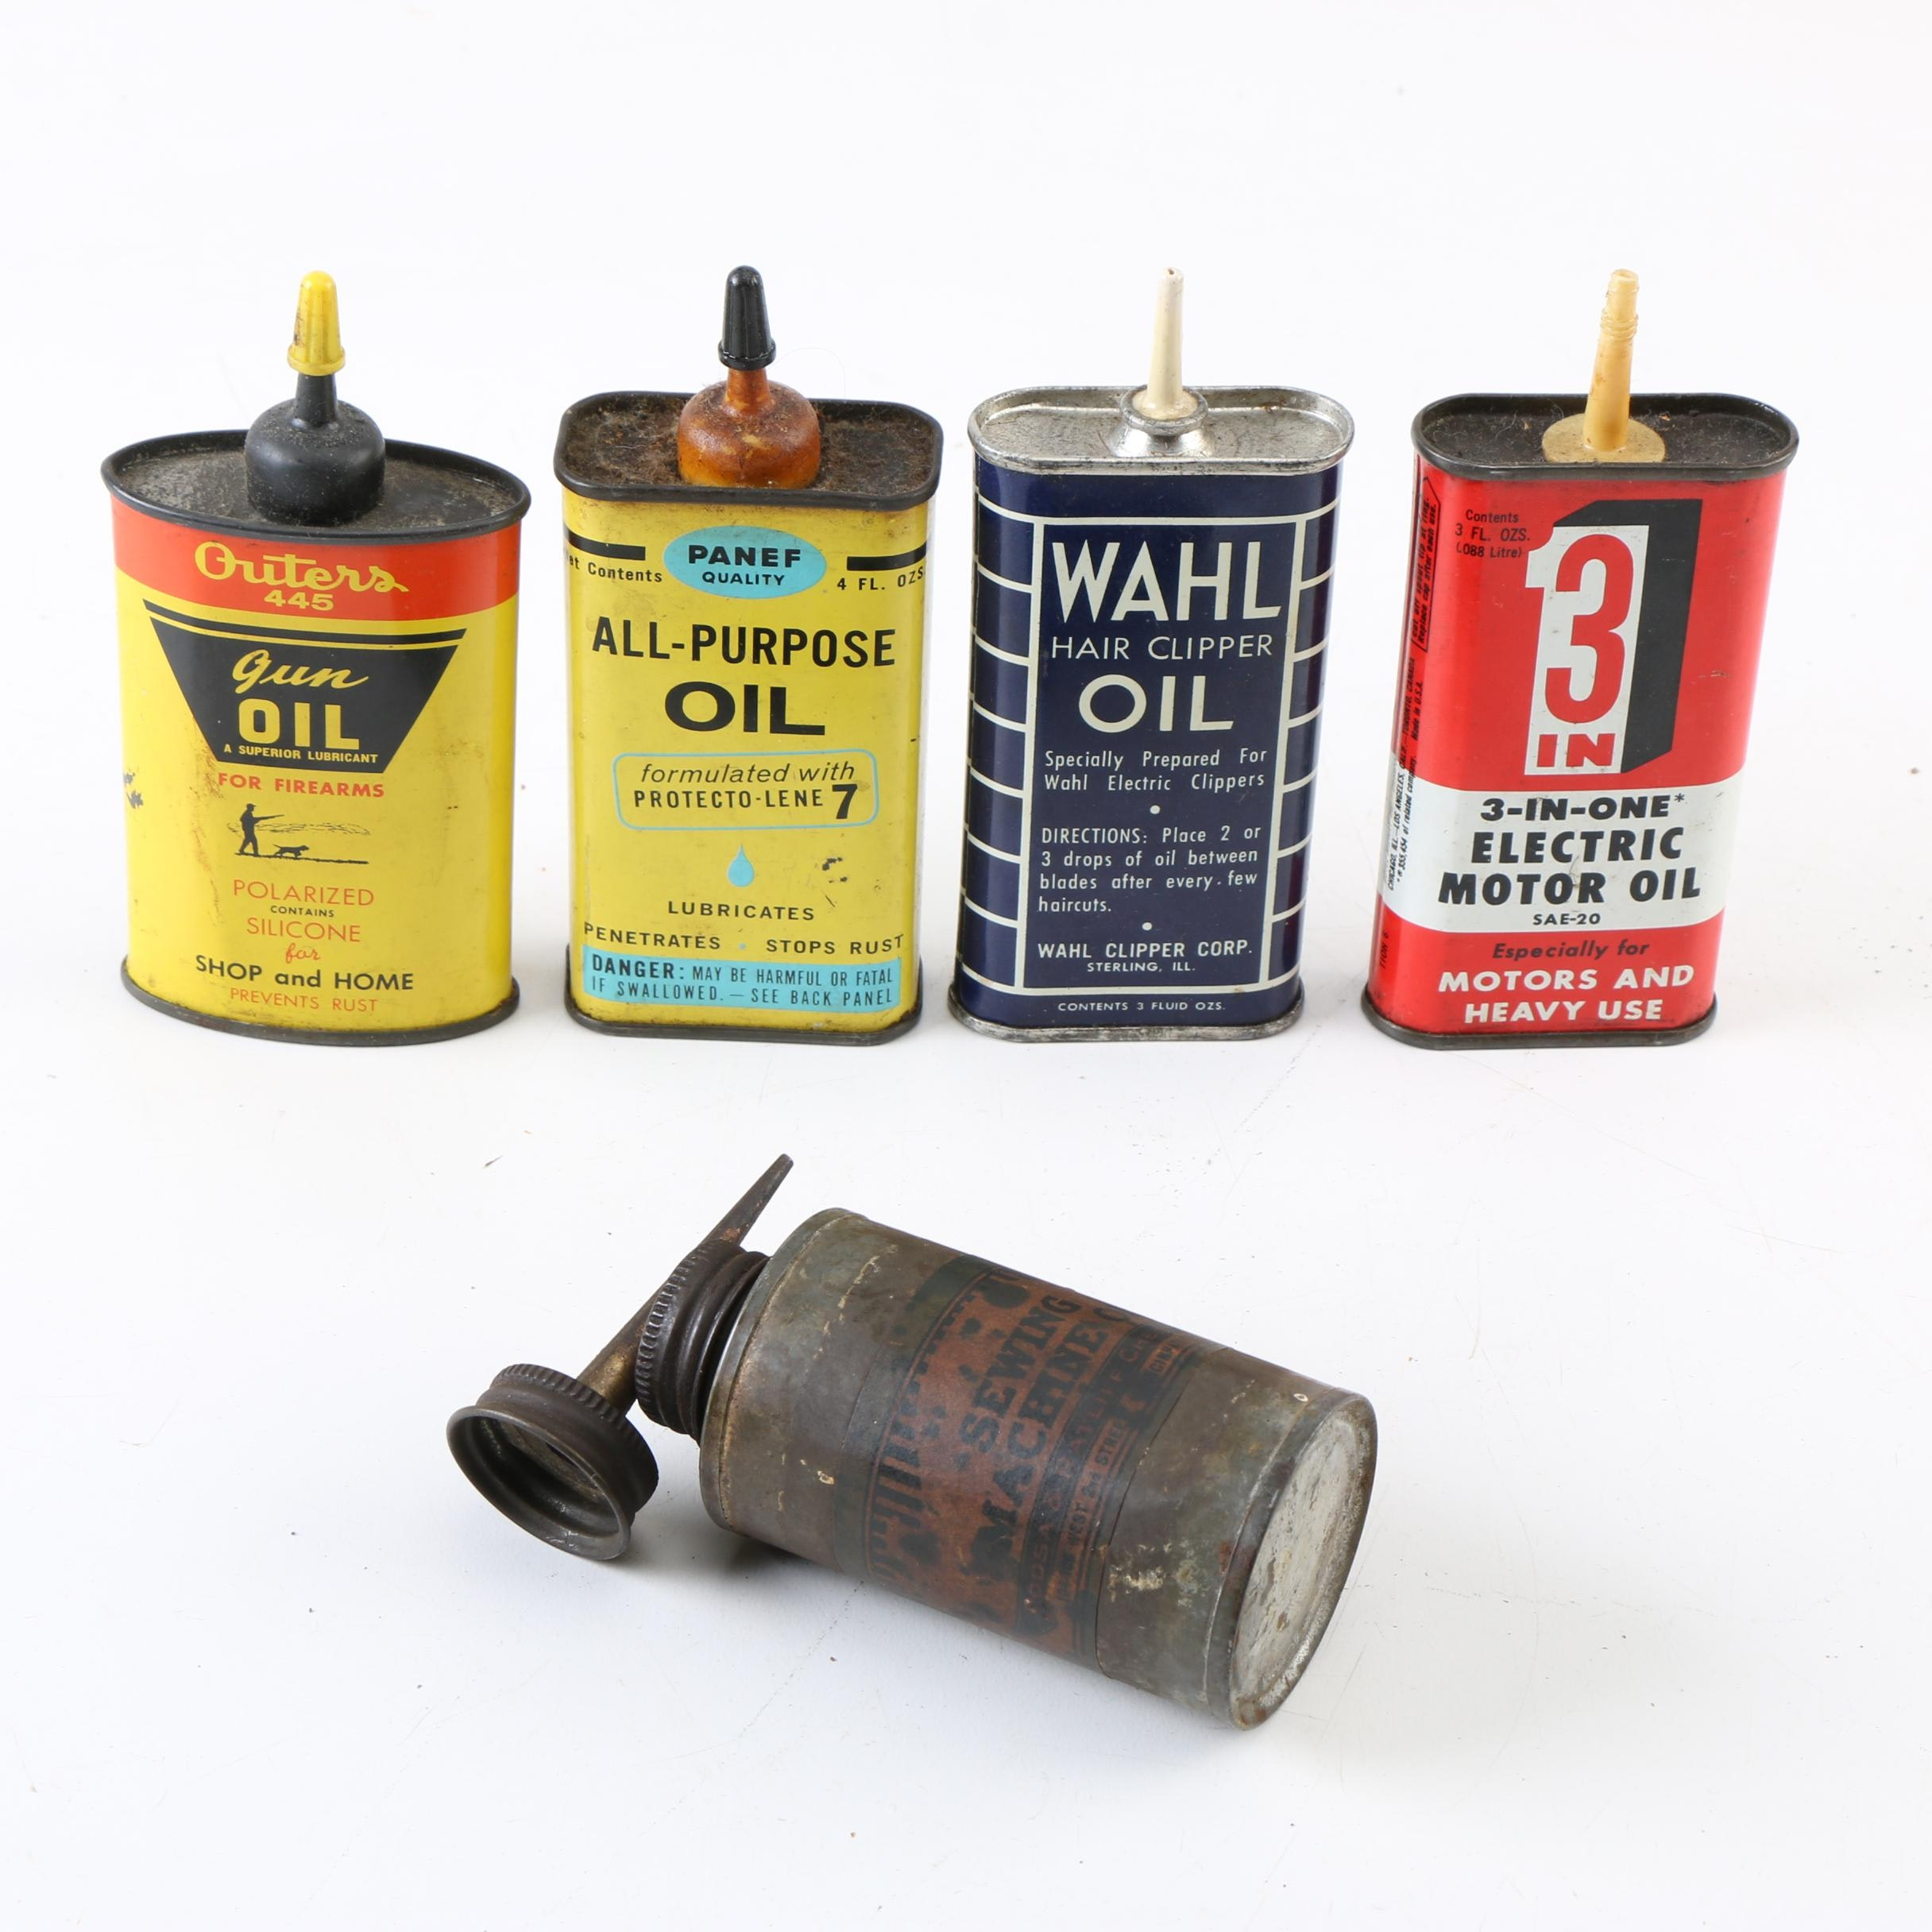 Vintage Oil Cans Featuring Outers and Wahl